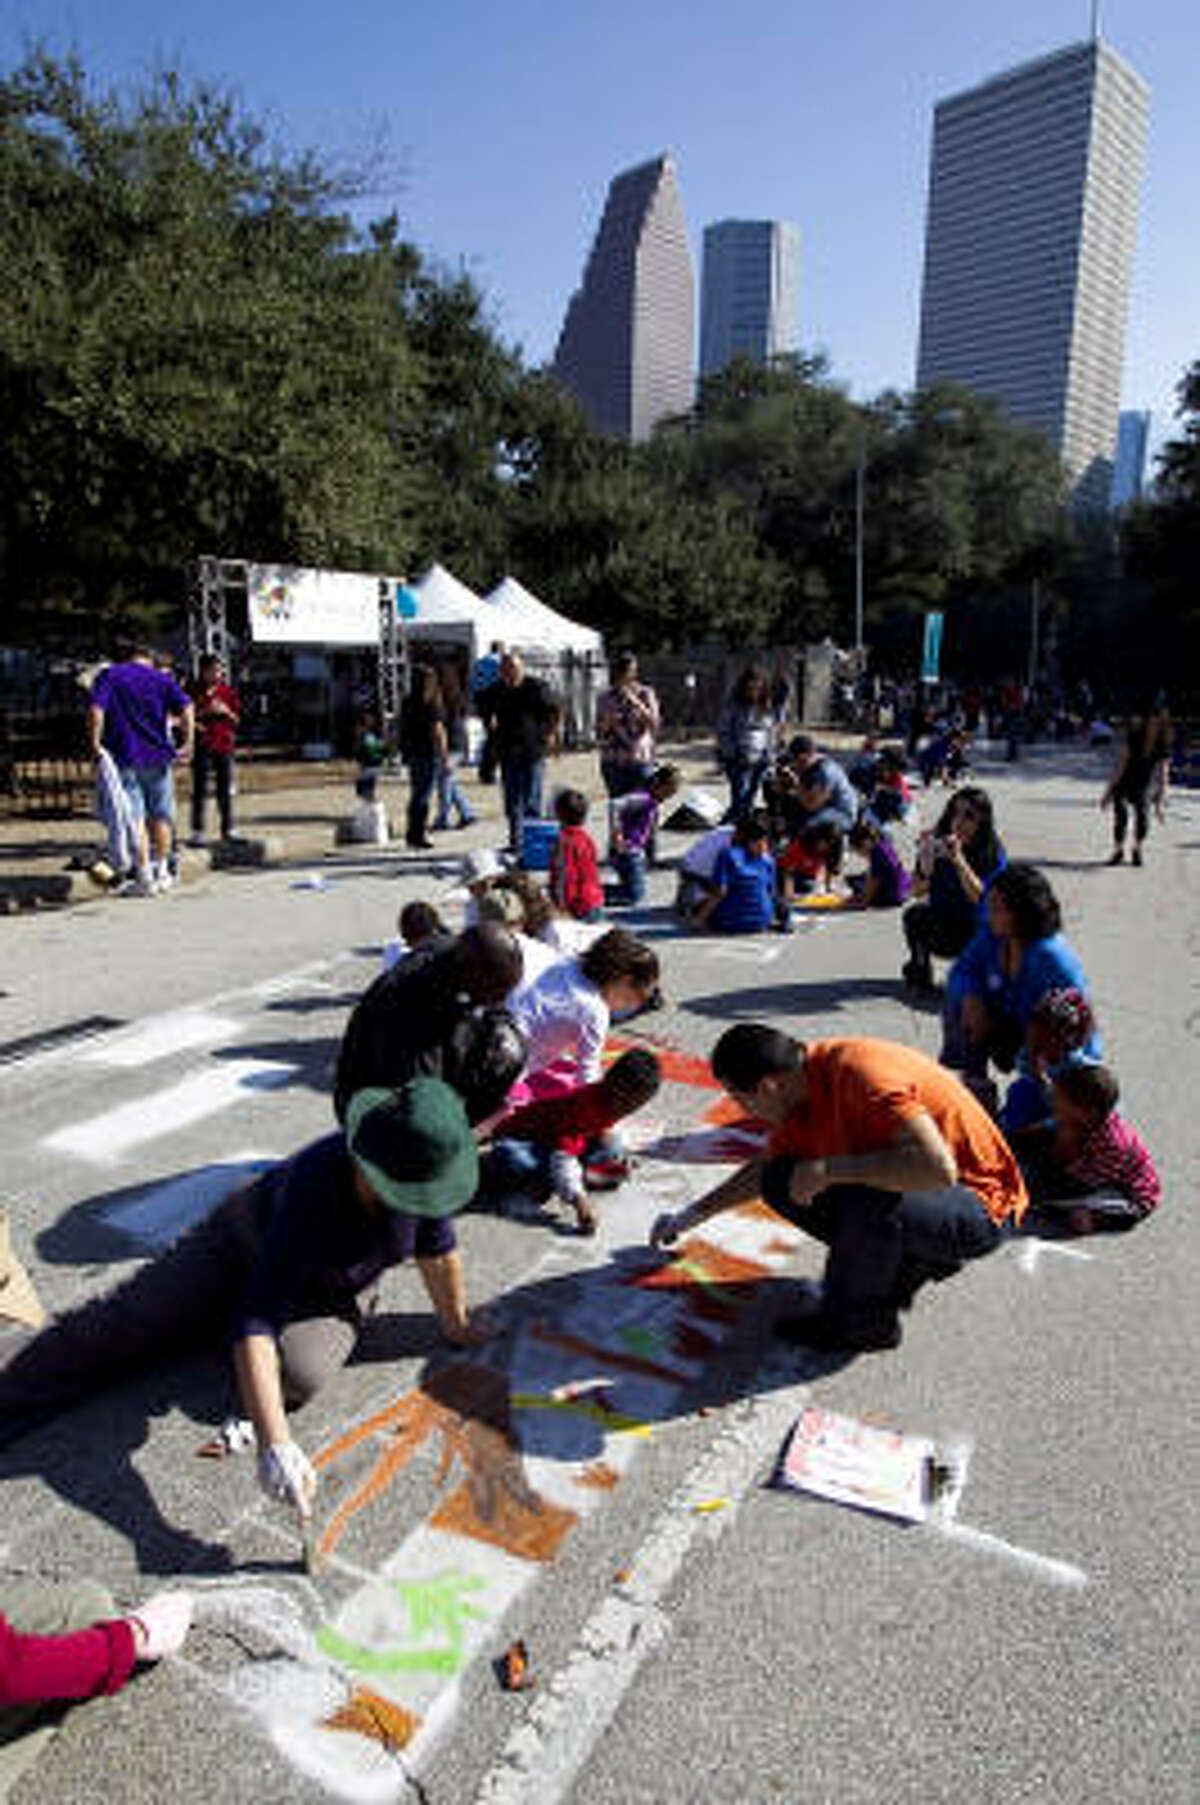 Two hundred and fifty artists participate in the Via Colori street painting festival in downtown Houston.The festival's theme is The Color of Sound. Proceeds benefit hearing impaired kids.